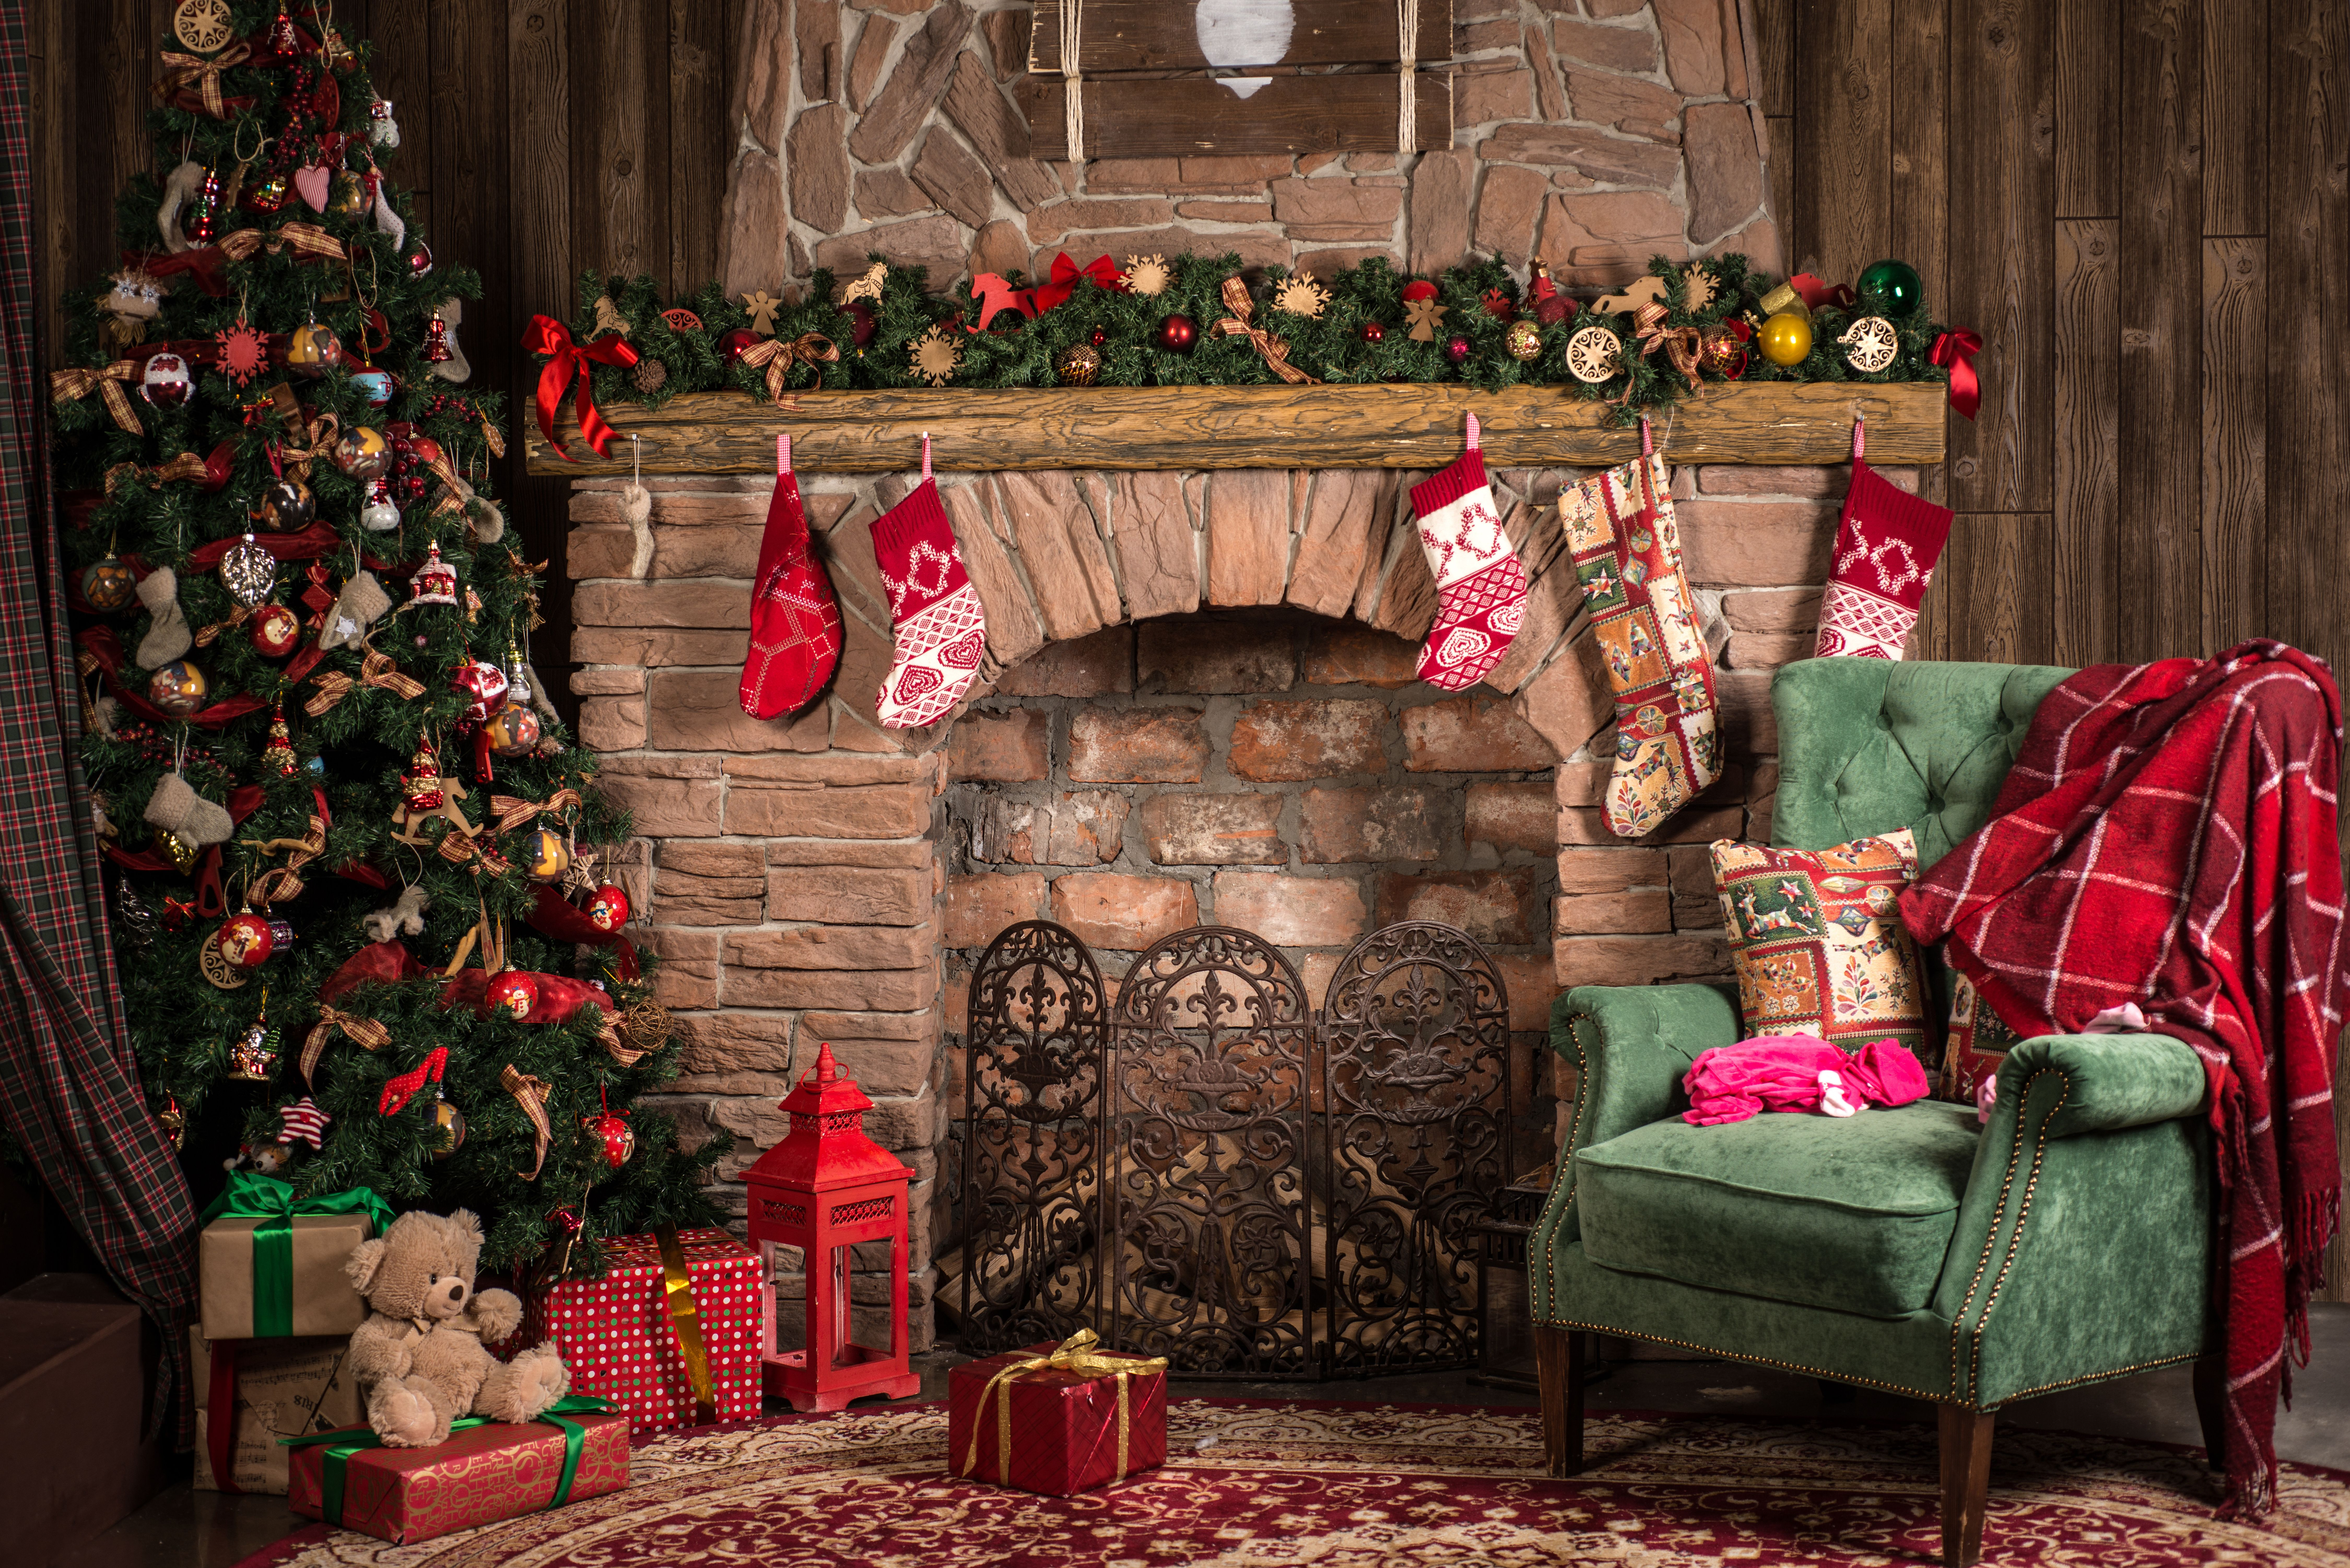 Holiday Christmas Tree Living Room Fireplace Ornaments Stocking Wallpaper